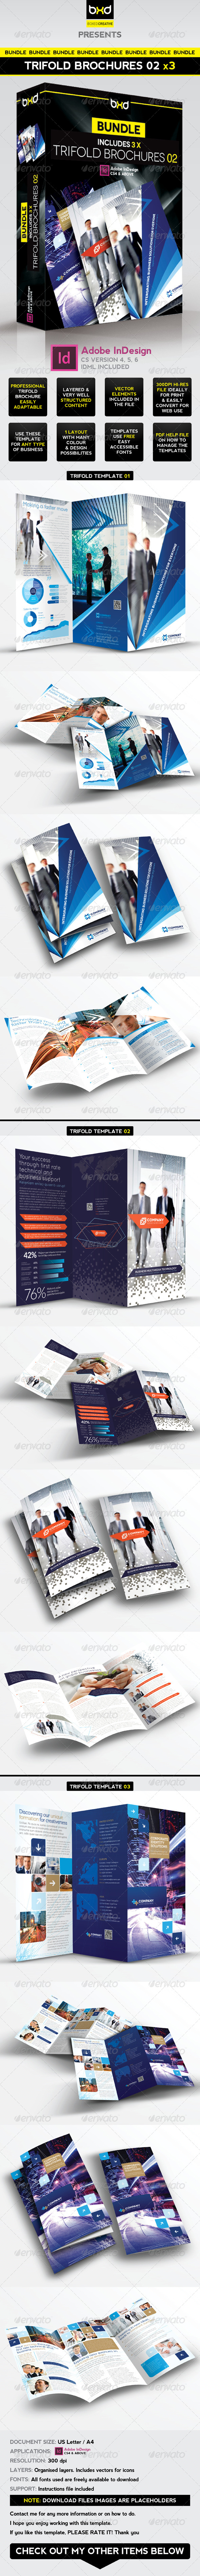 GraphicRiver Trifold Brochures Bundle InDesign Layout 02 5135561